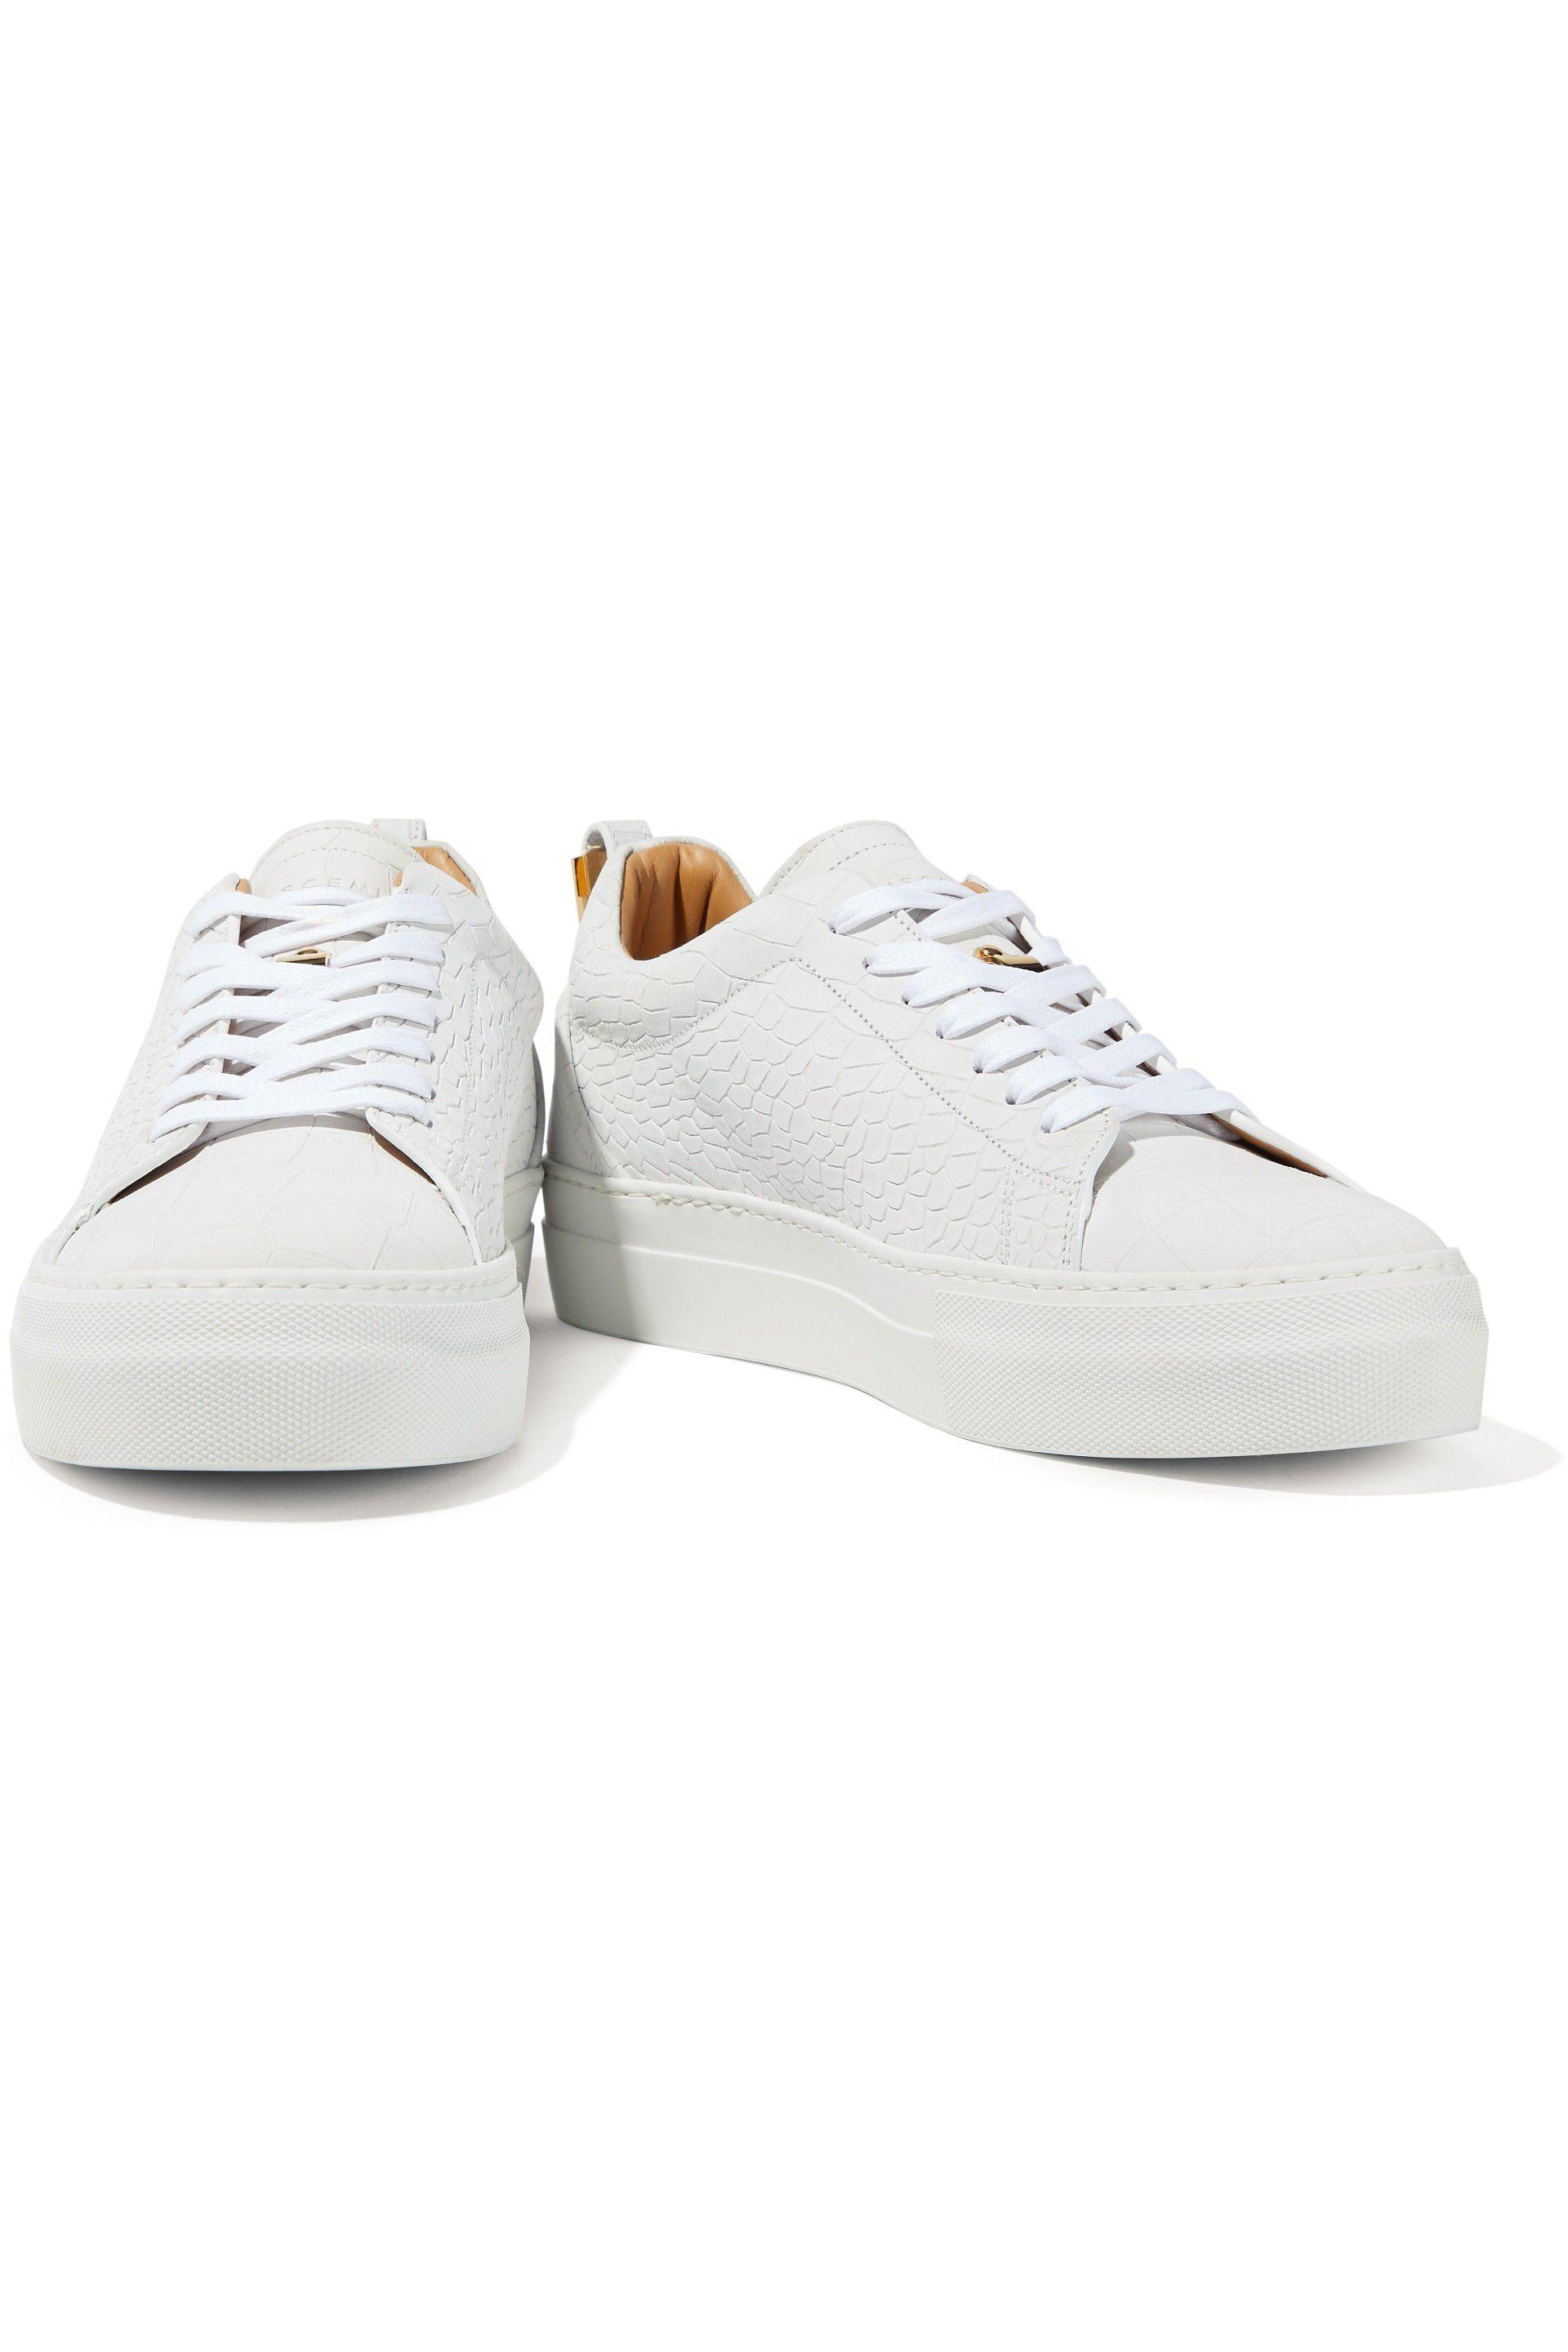 ffb42140040c2d Buscemi - Woman Croc-effect Leather Sneakers Off-white - Lyst. View  fullscreen